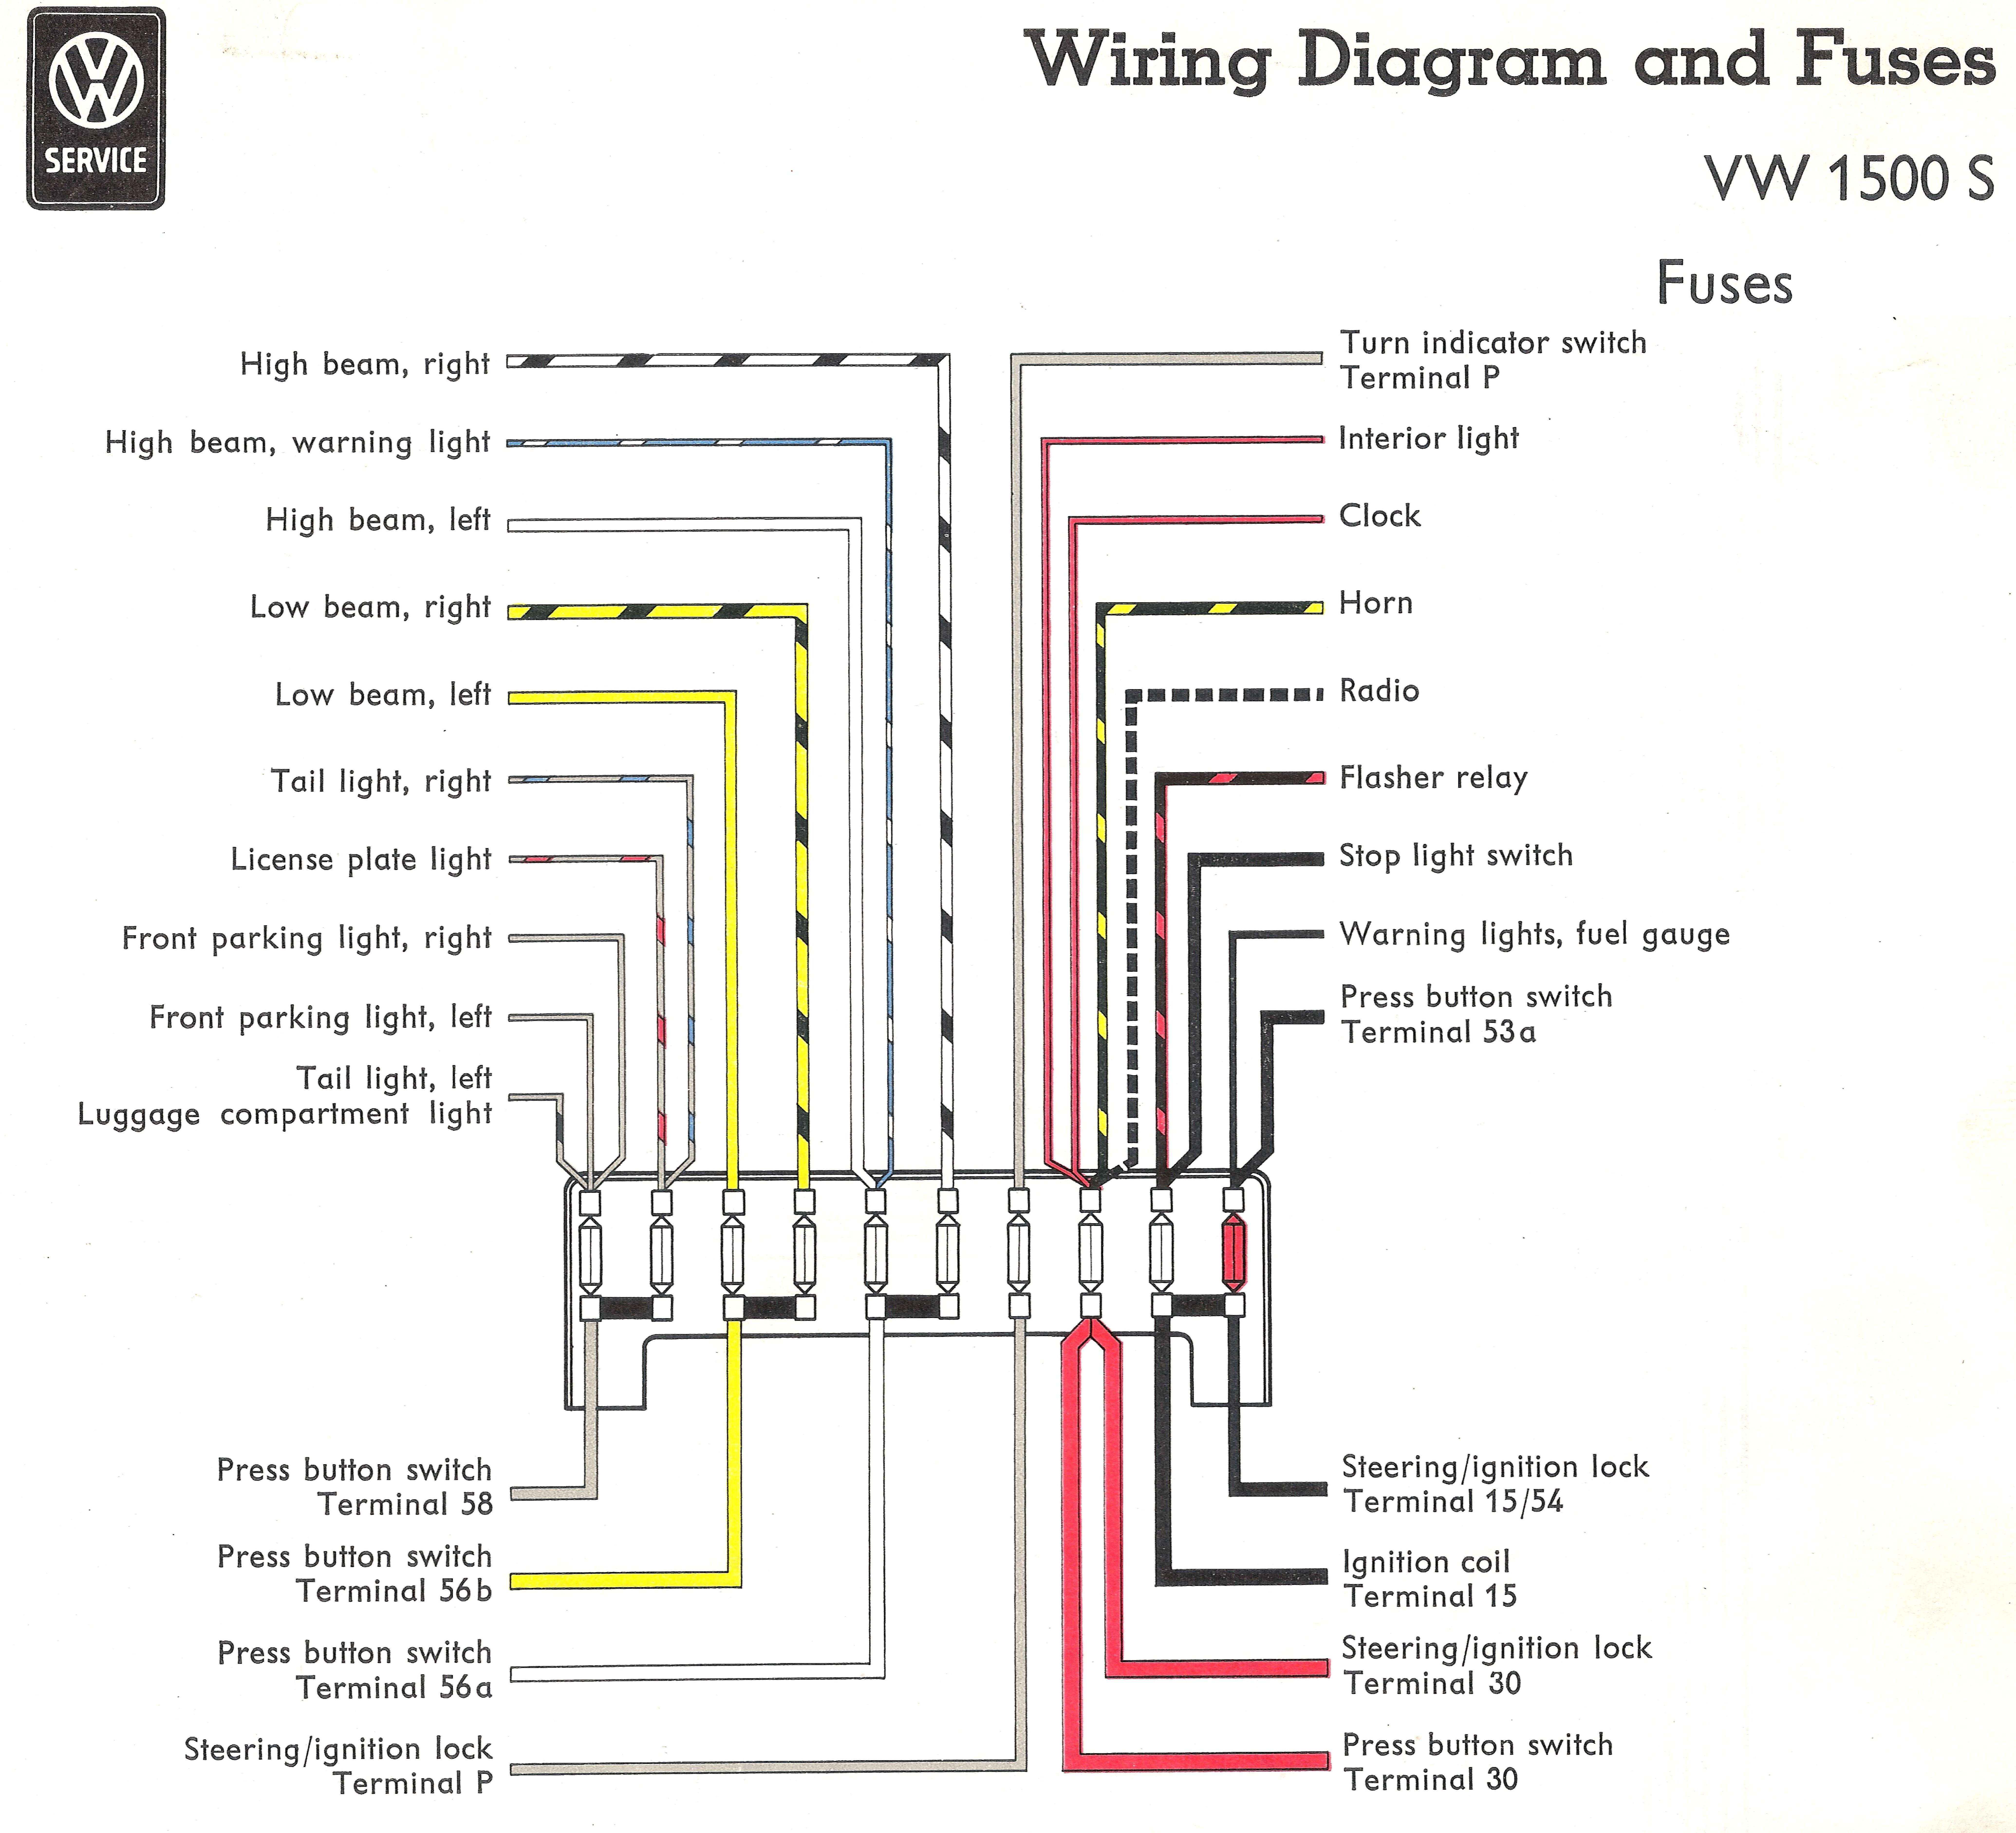 1972 vw bus wiring diagram for samsung dryer heating element 1970 fuse 86 box library1970 trusted diagrams u2022